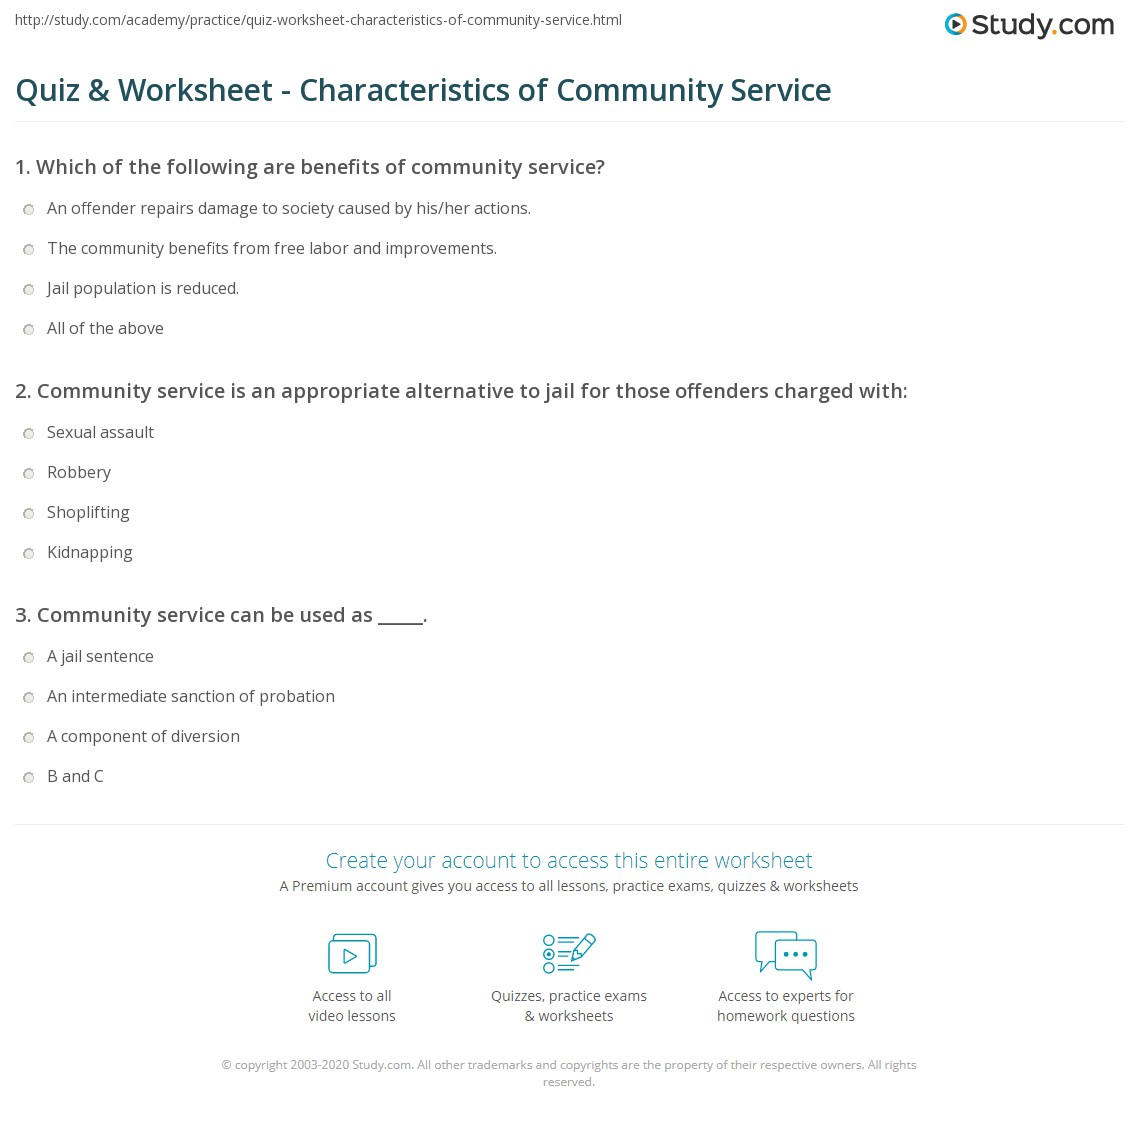 Quiz Worksheet Characteristics Of Community Service